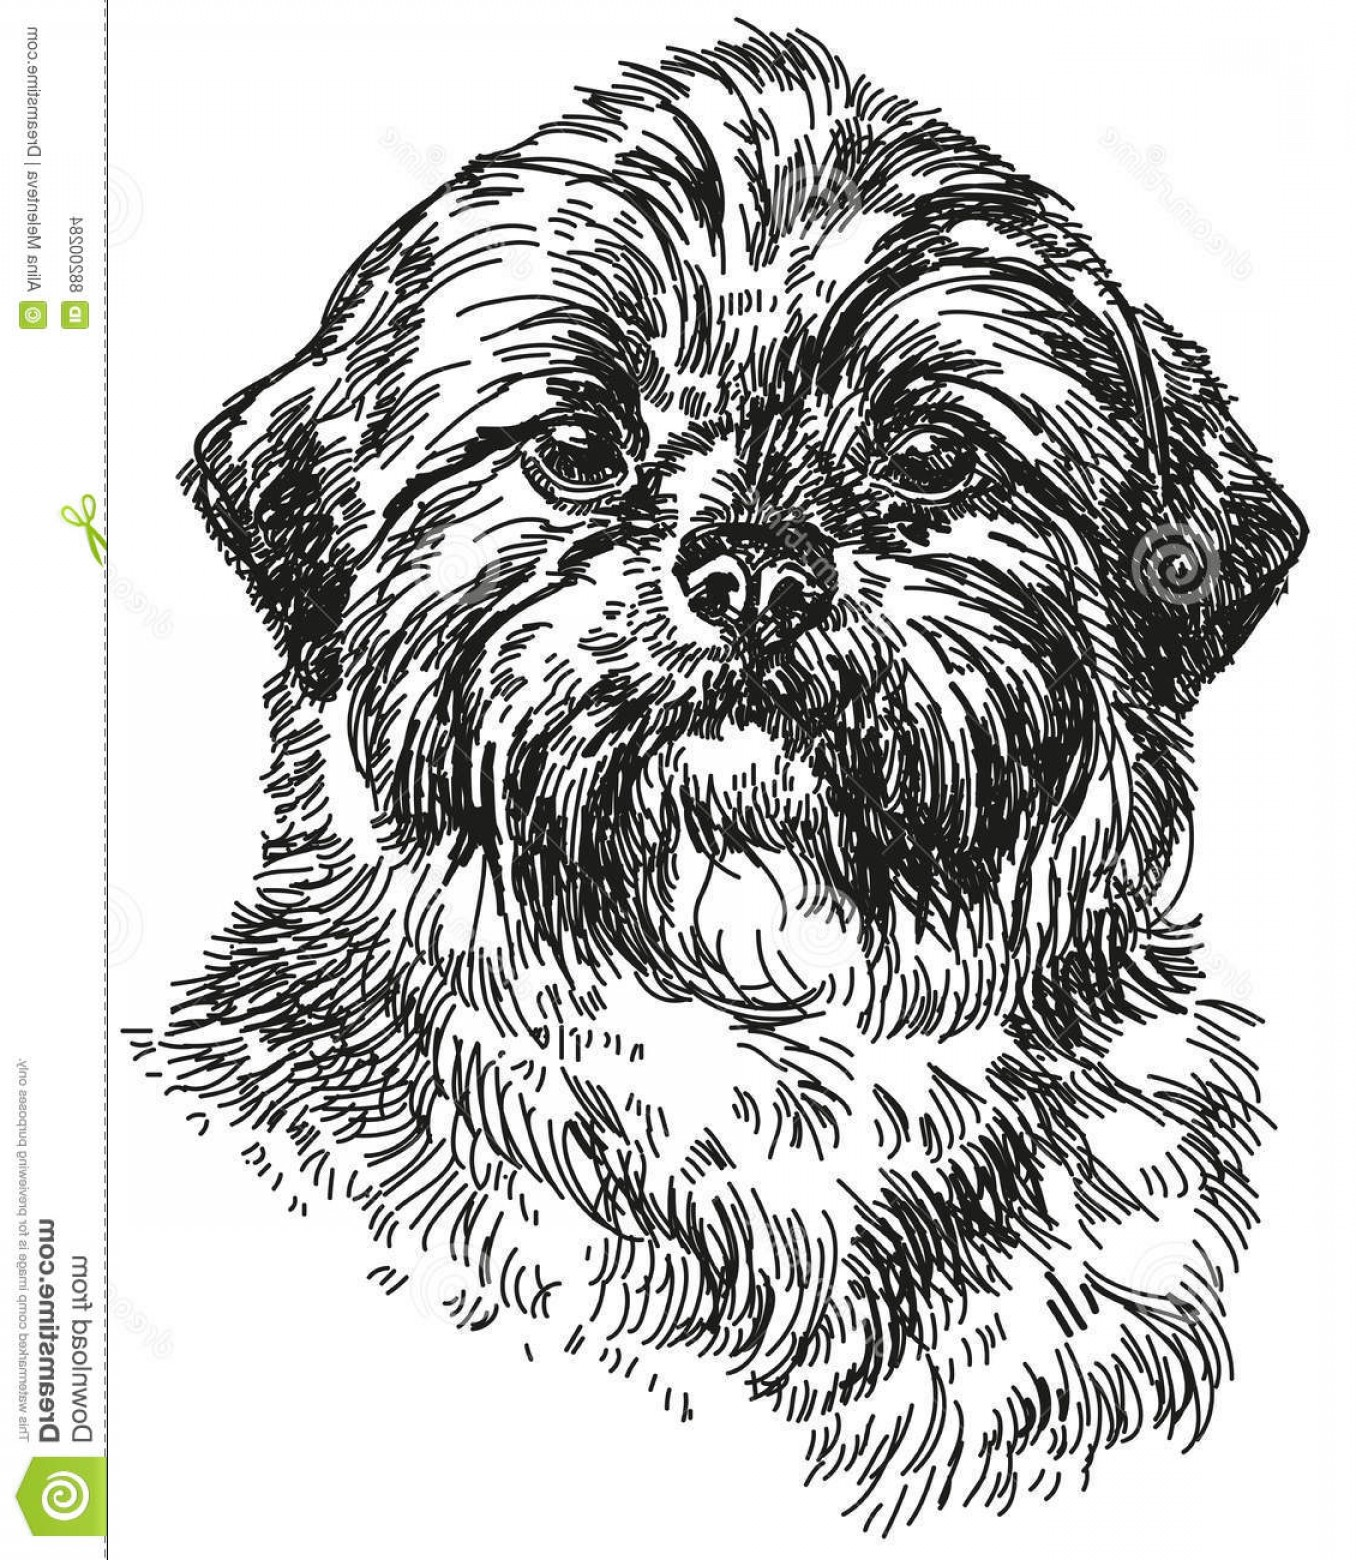 Shih Tzu Vector Siluete: Stock Illustration Shih Tzu Vector Hand Drawing Illustration Graphic Portrait Dog Isolated White Background Image